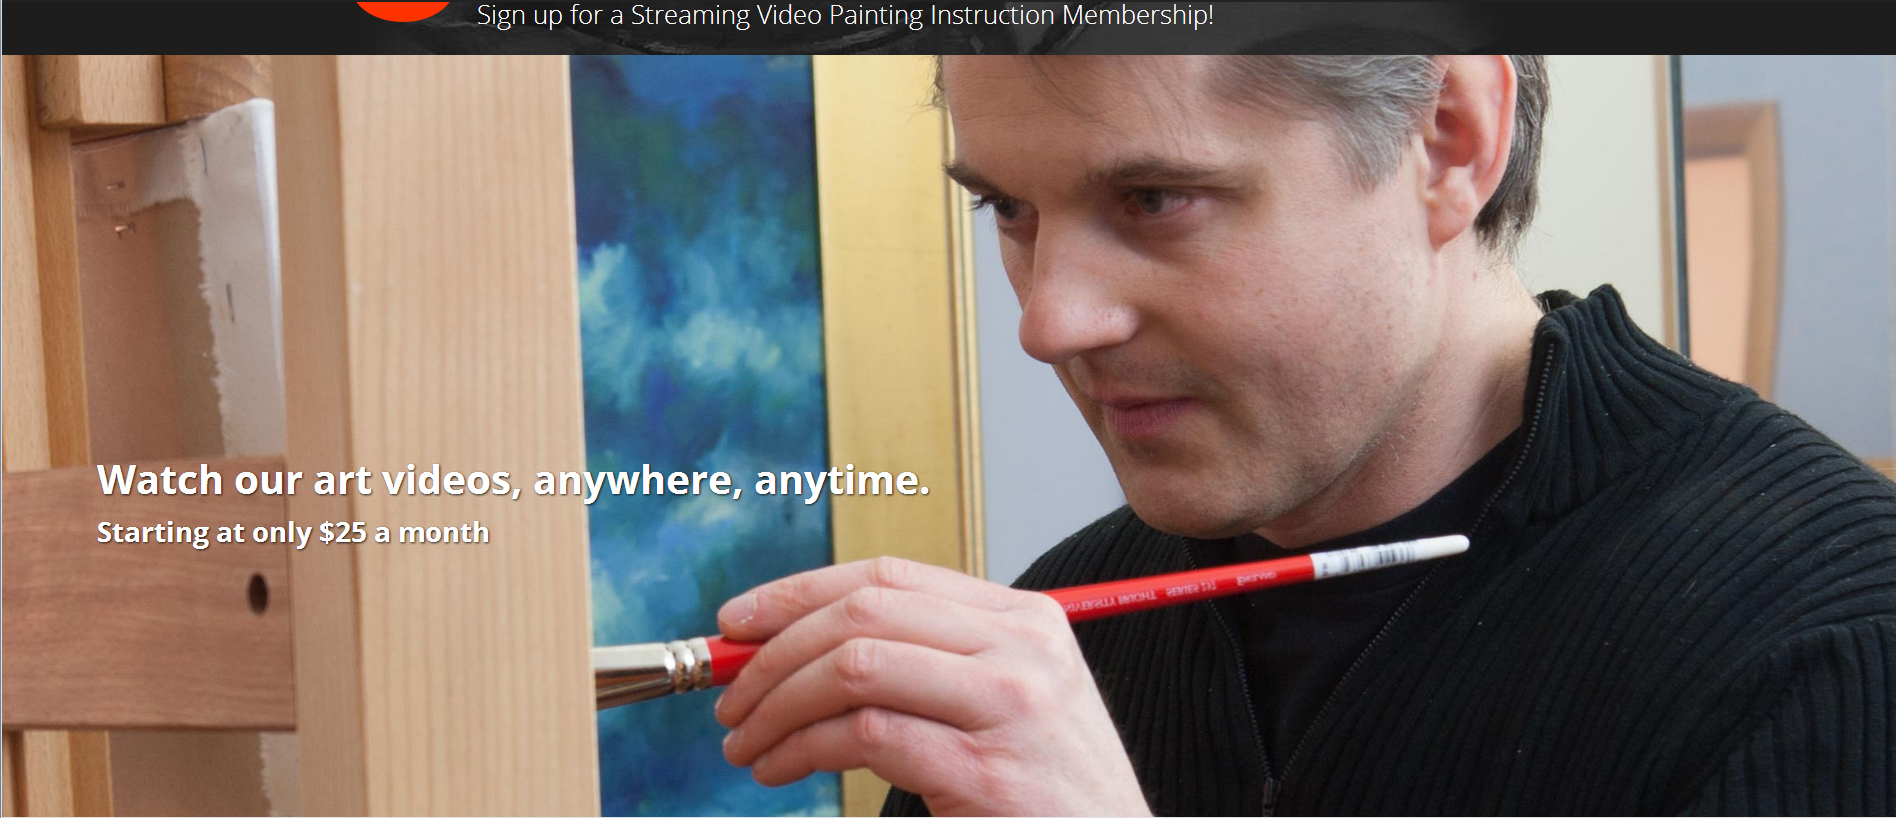 learn-to-paint-streaming-video-membership